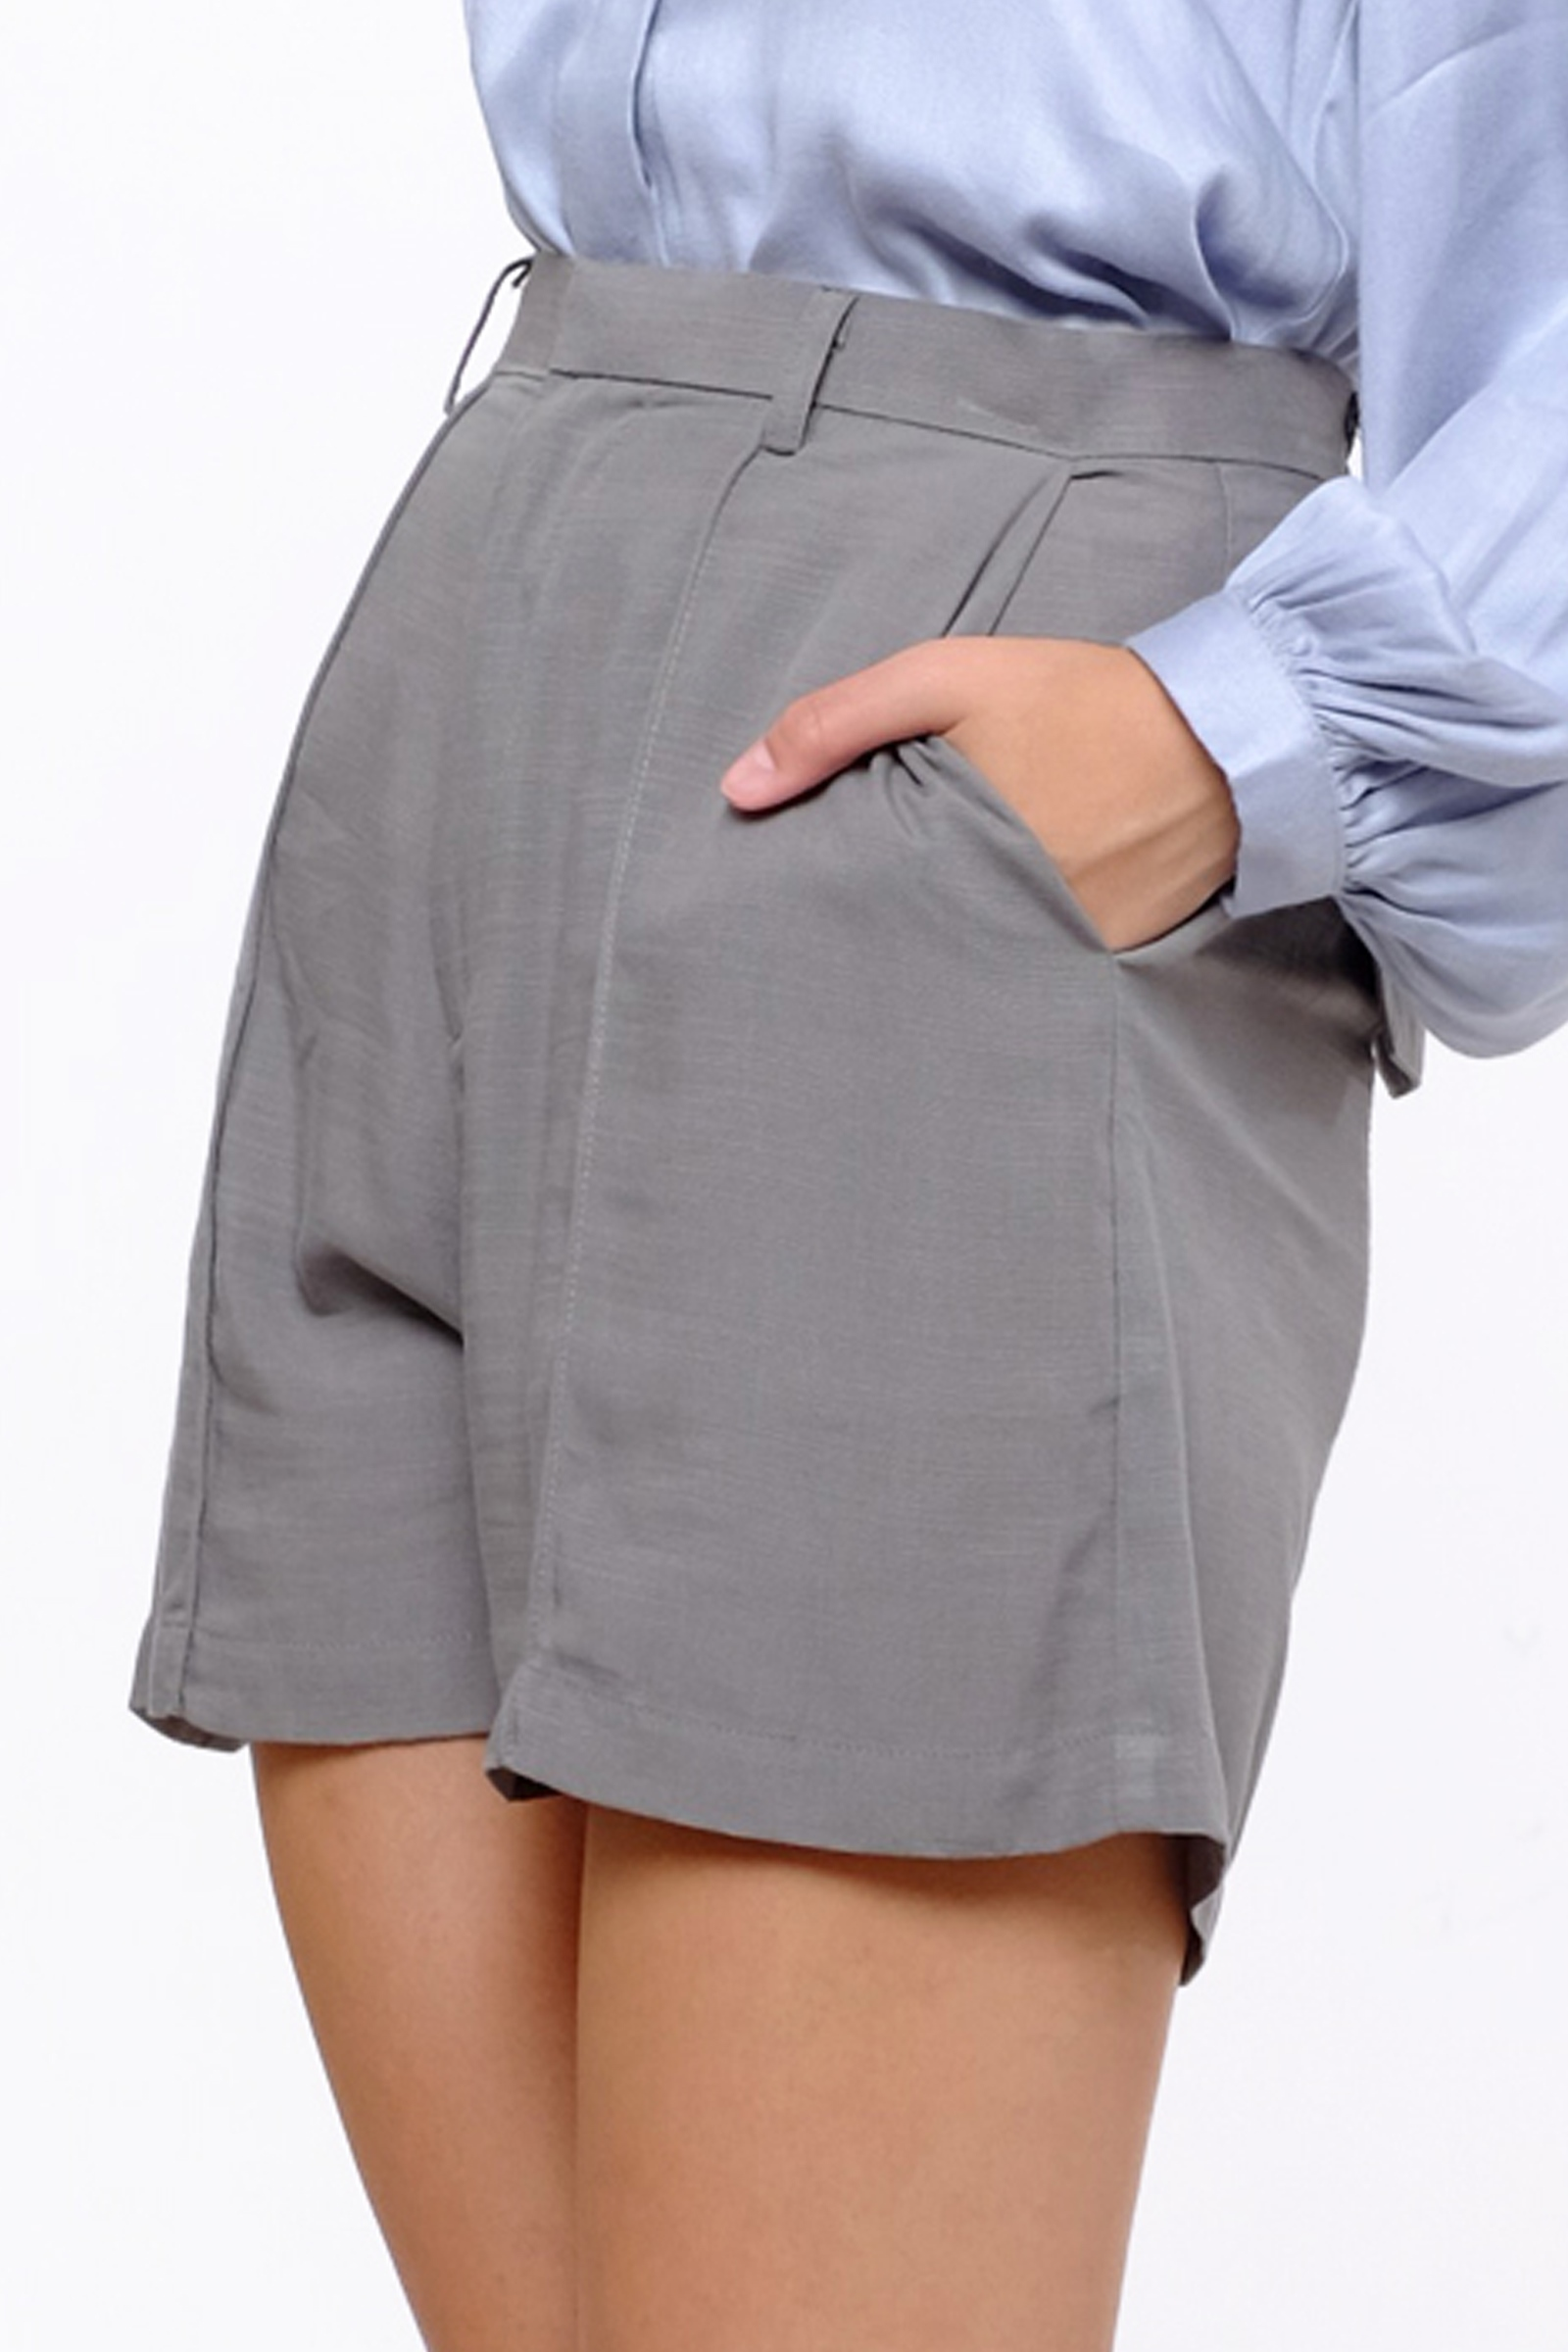 Picture of Hardy Short Pants Silver Grey